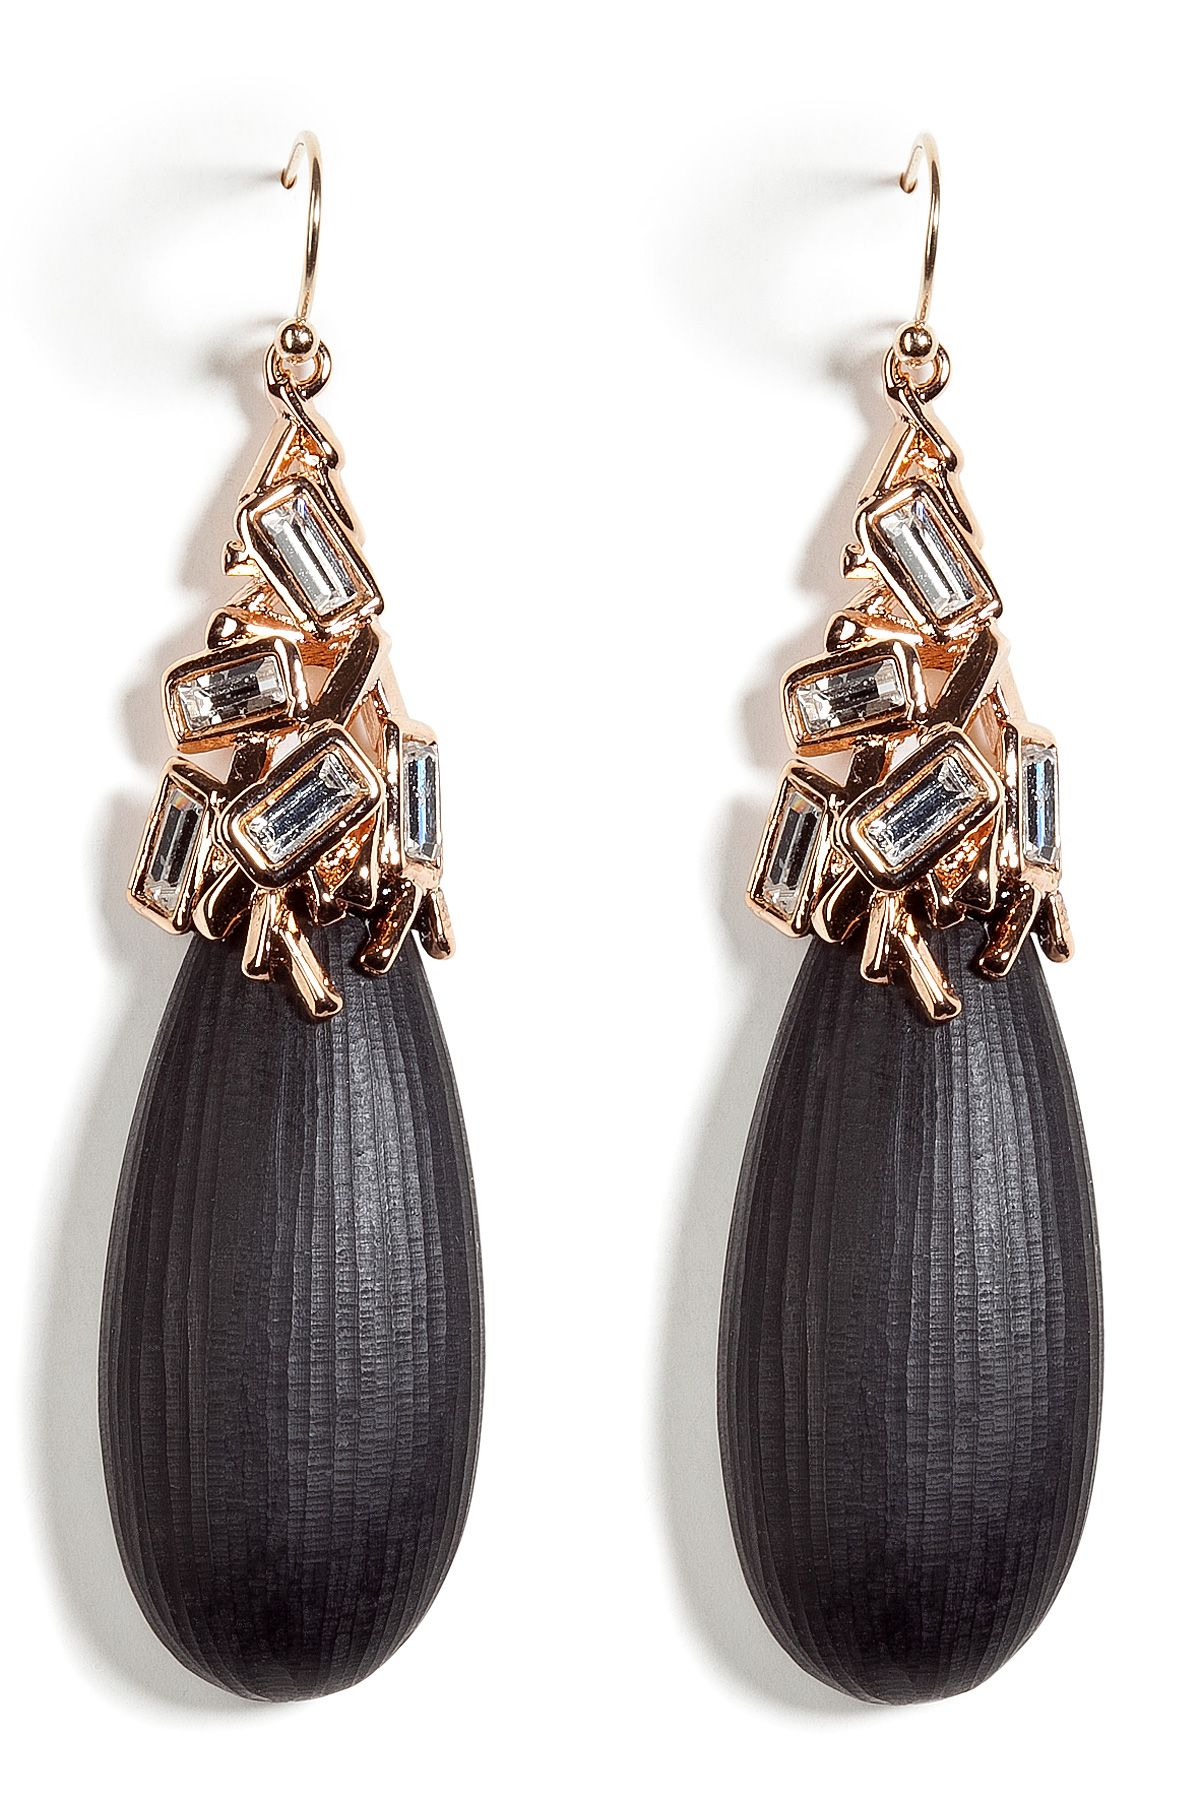 ALEXIS BITTAR Black Lucite earrings with encrusted ...